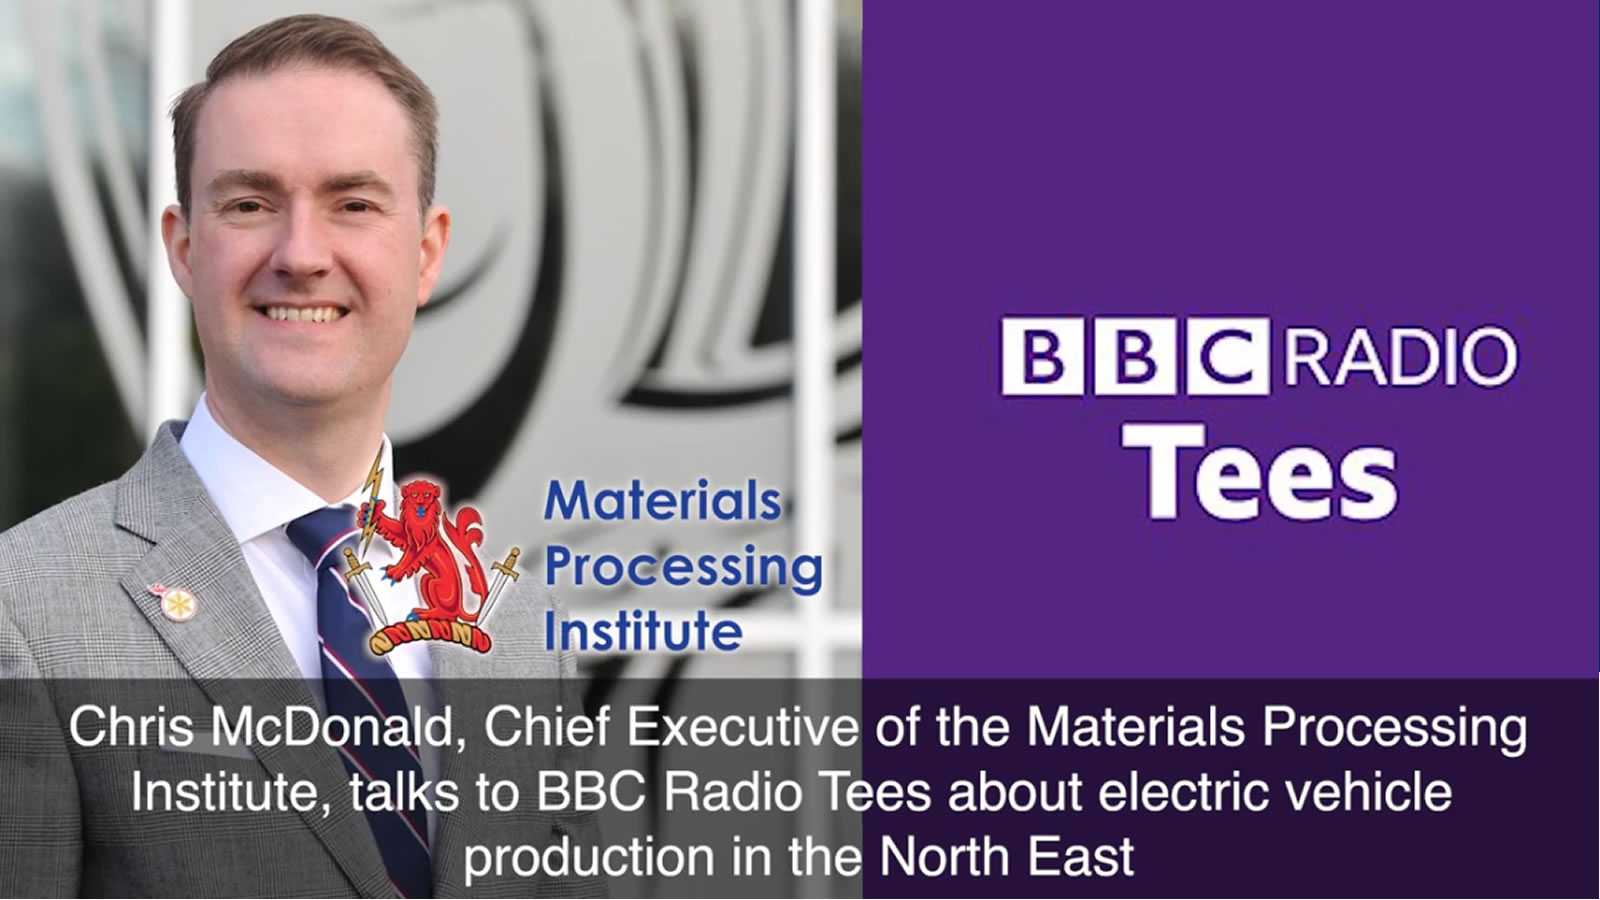 Chris McDonald talks to BBC Radio Tees about electric vehicle production in the North East - January 2021